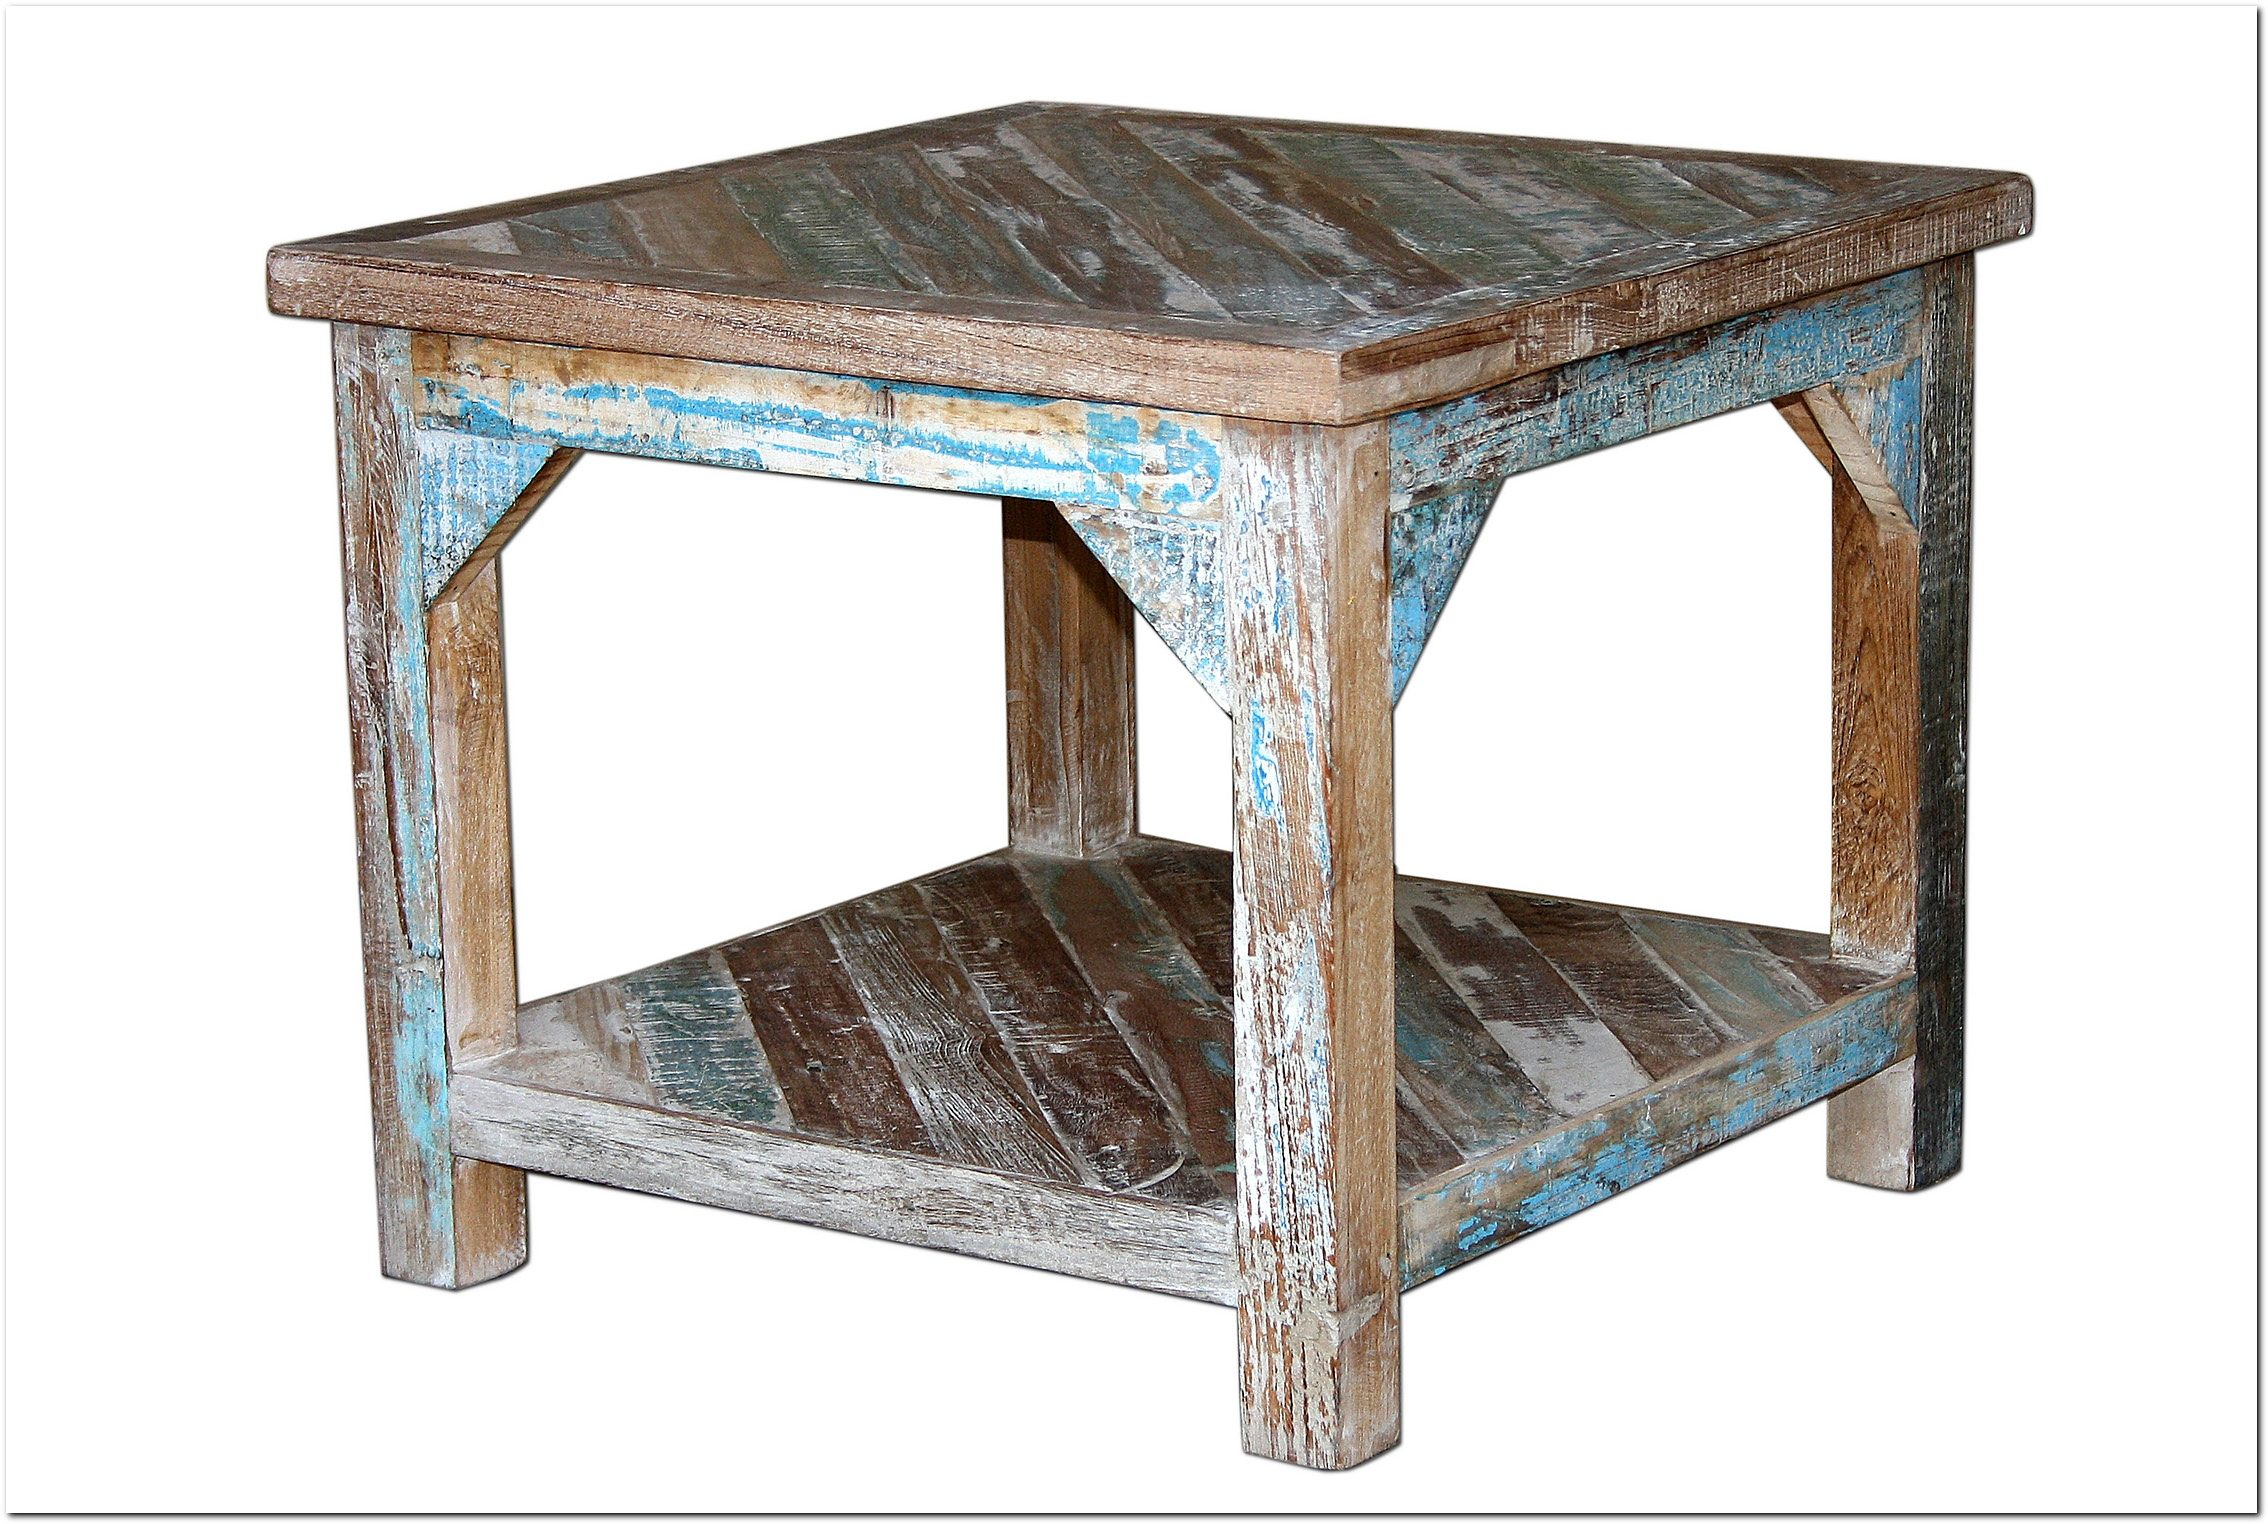 Home affaire Couchtisch »India« aus recyceltem Holz